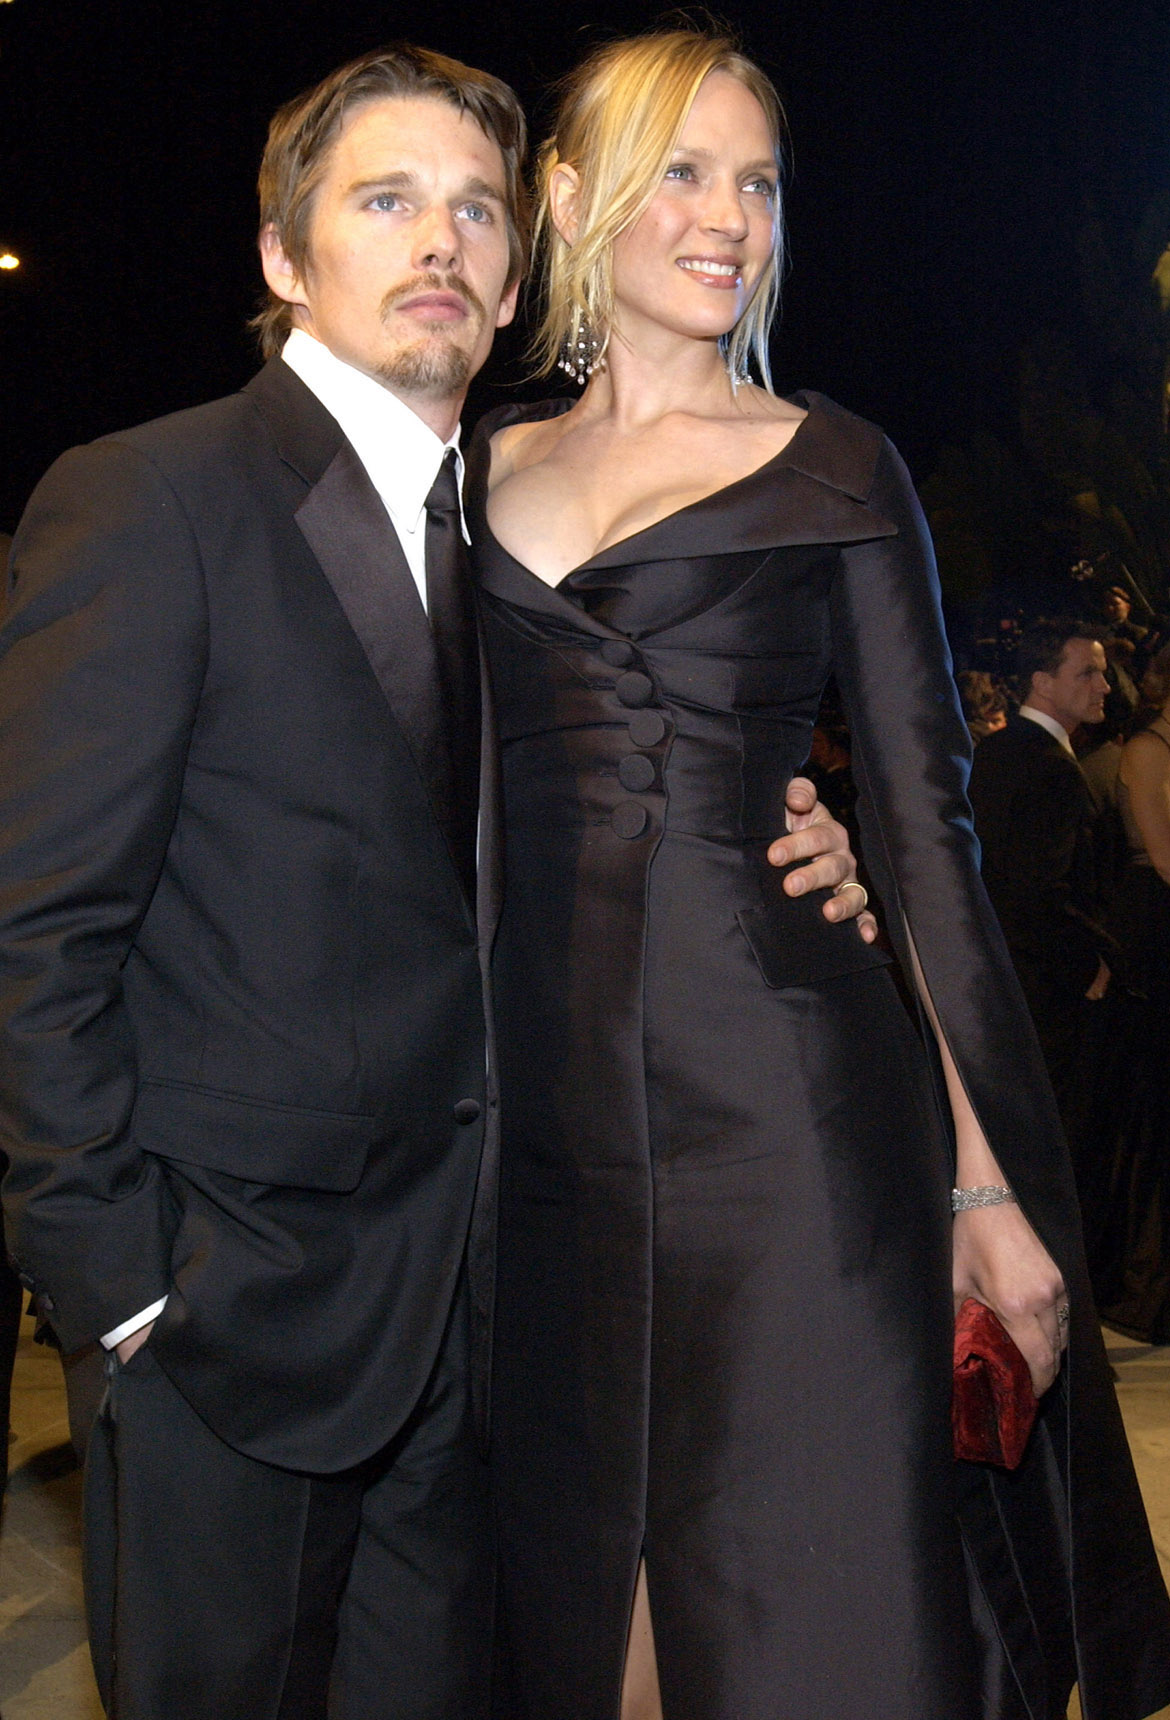 ethan hawke & uma thurman | Hollywood Couples | Pinterest